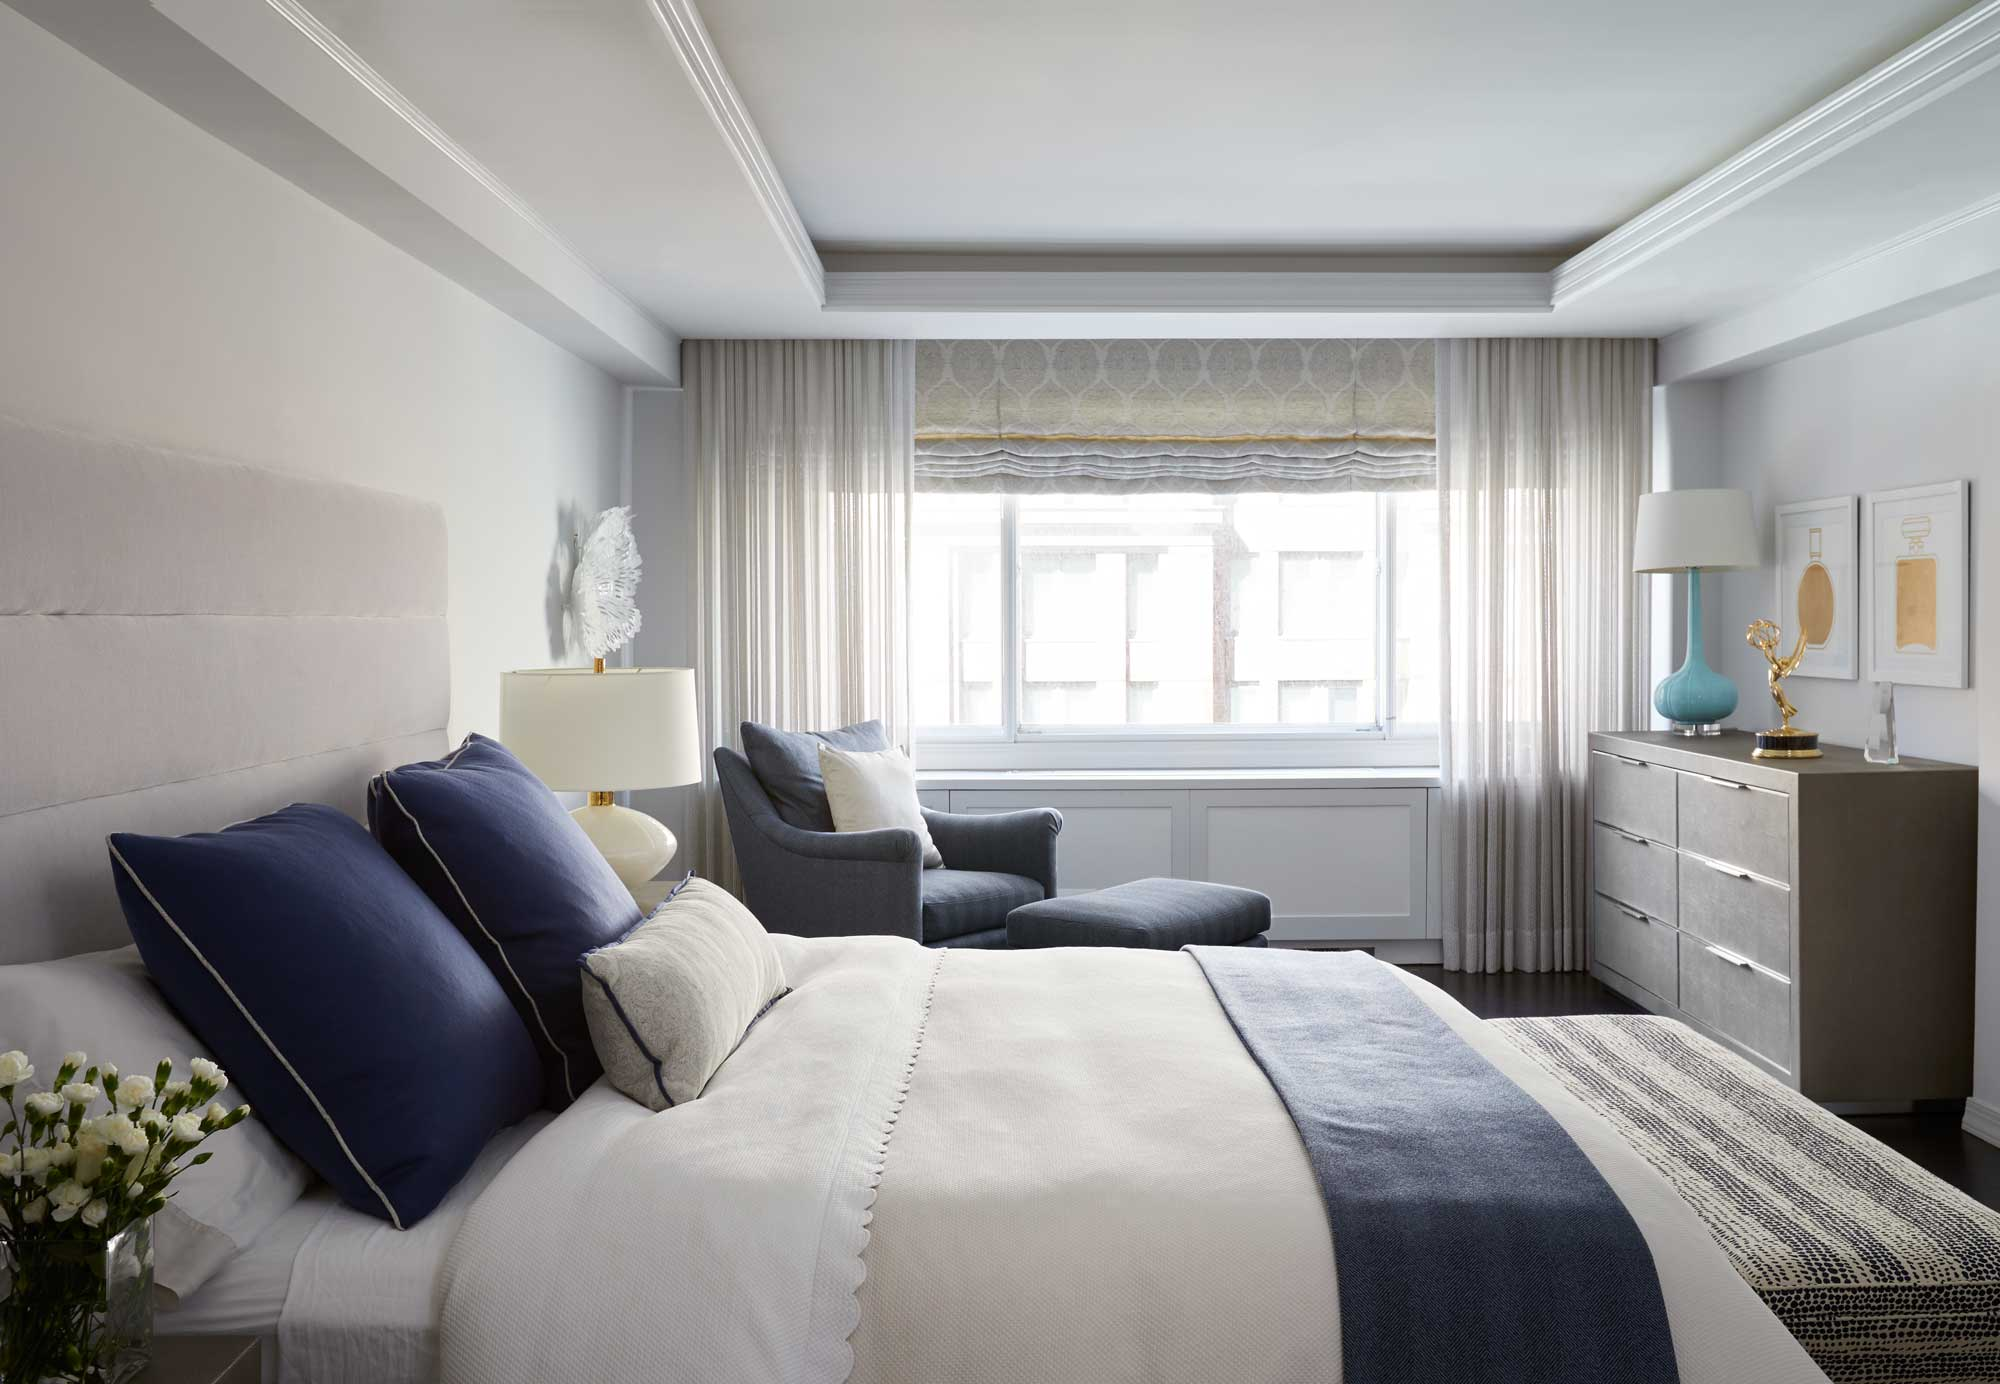 brooke moorhead design lenox hill playful bedroom